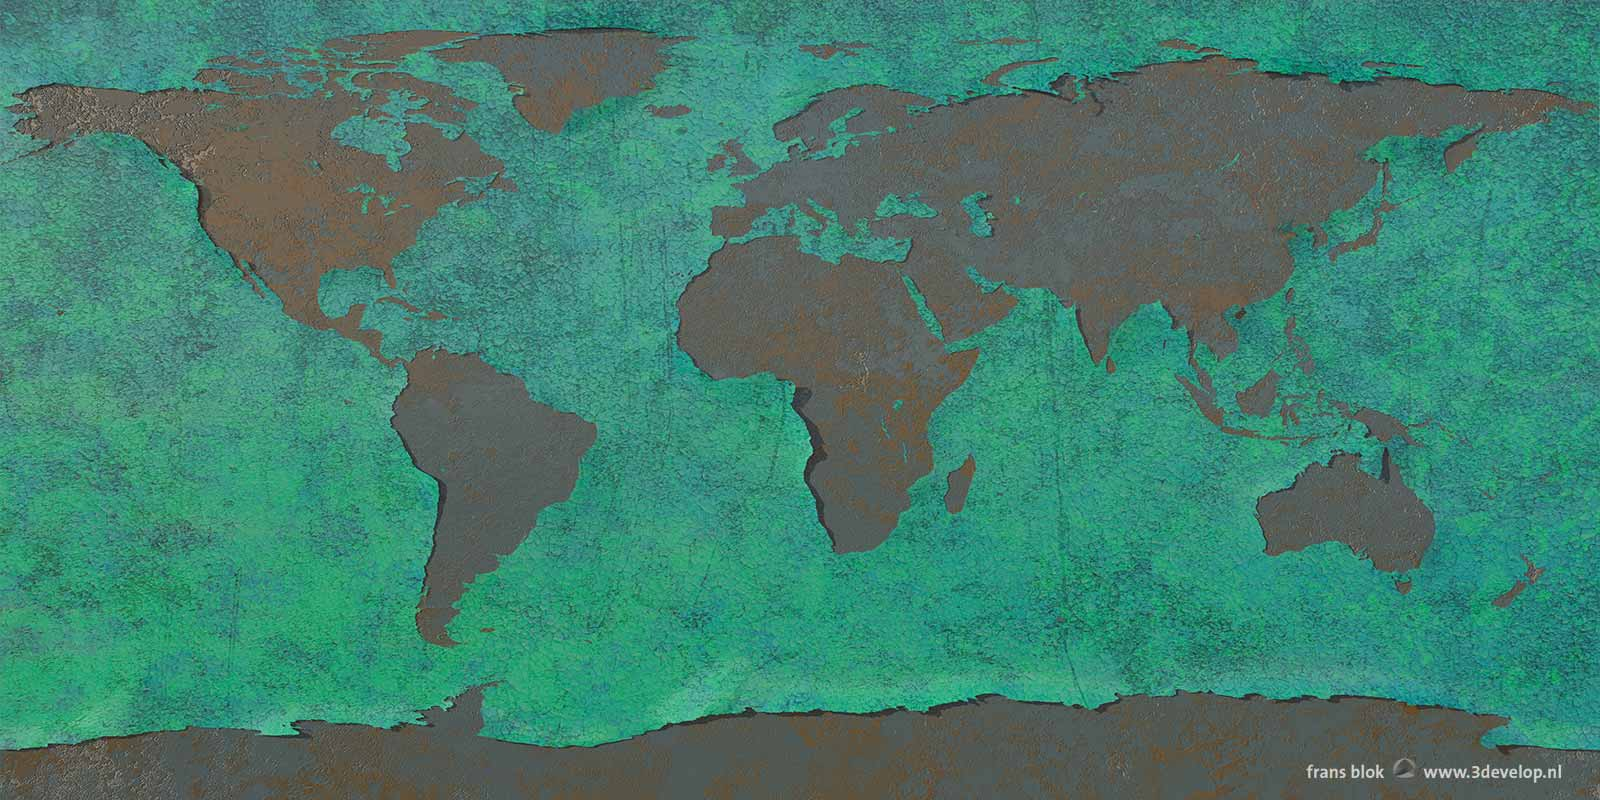 Old wall with peeling blueish green paint in which the continents of the Earth can be recognized.